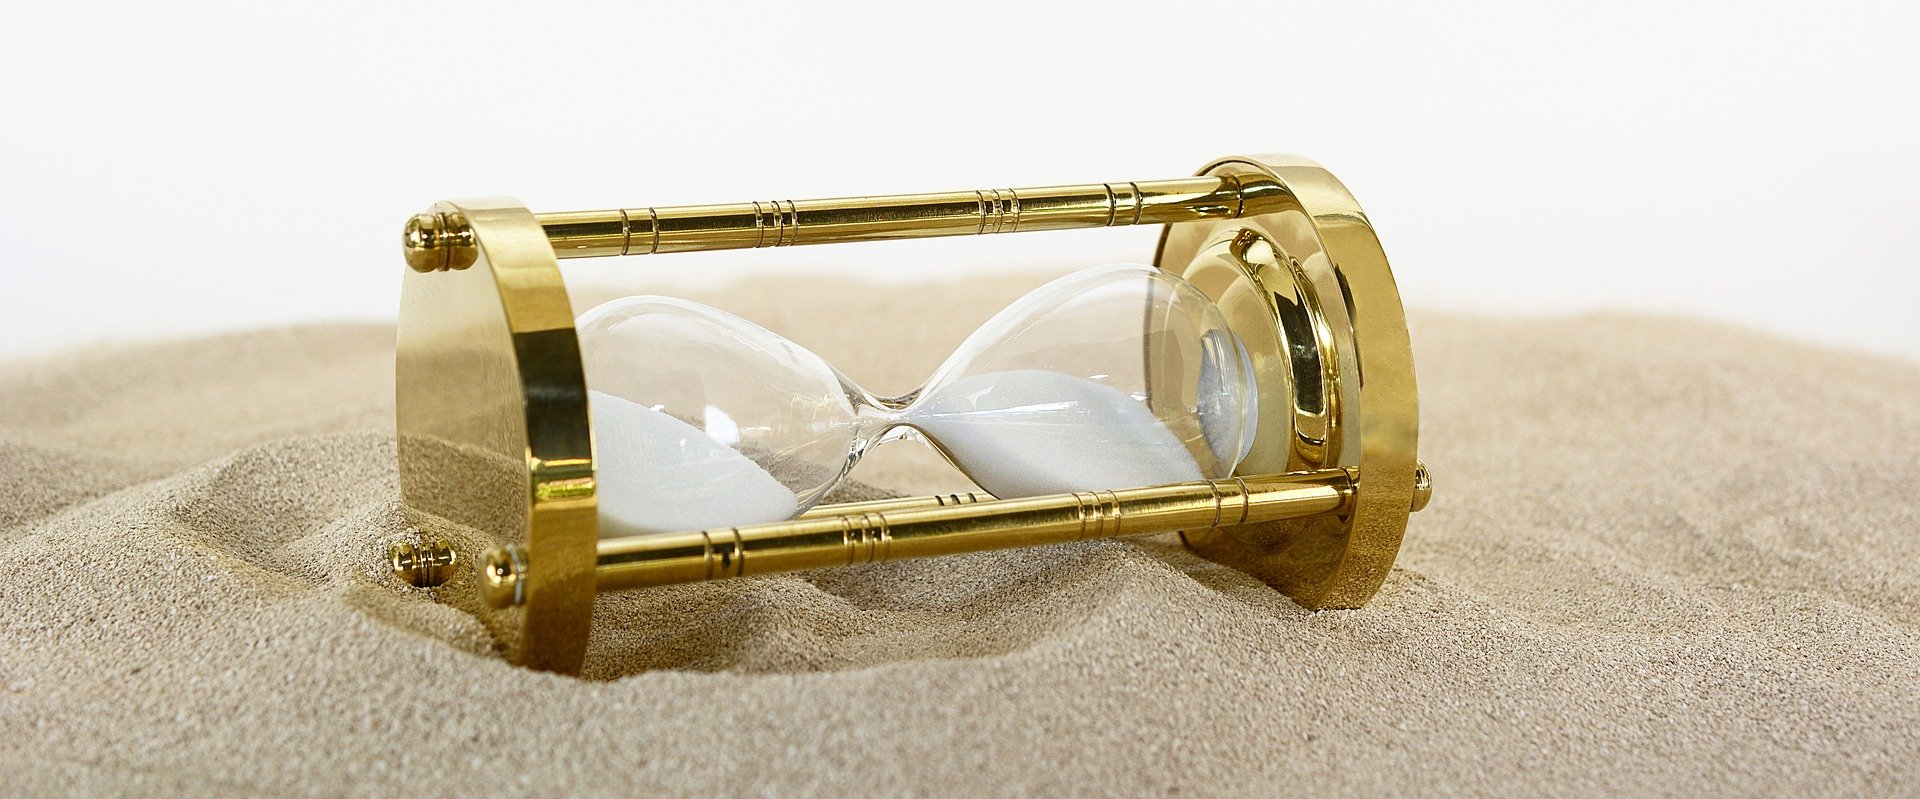 A golden hourglass lying in sand.